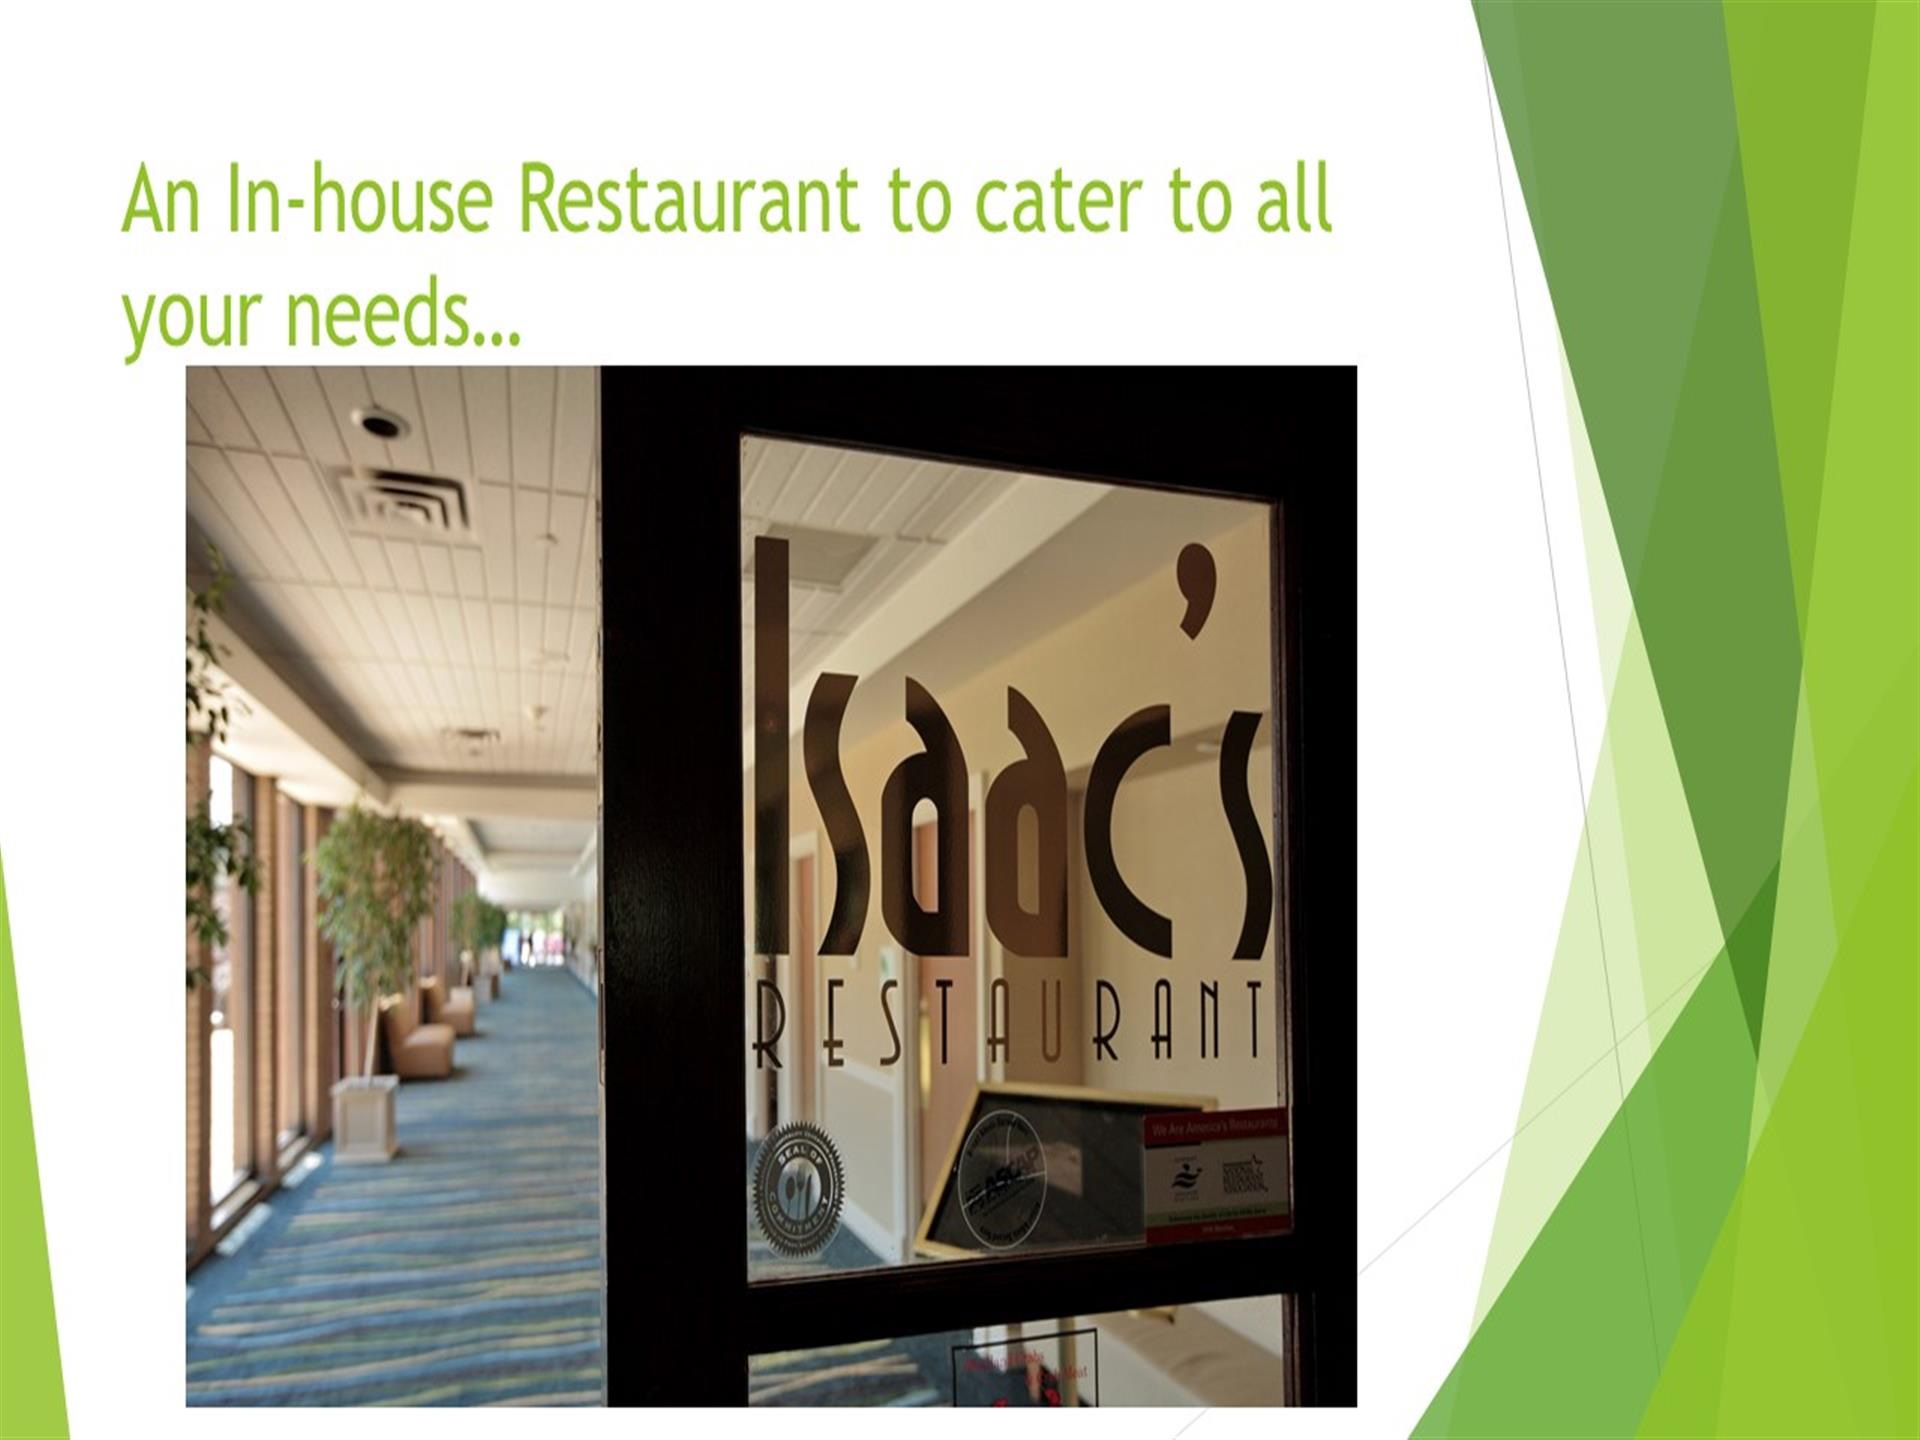 An in-house restaurant to cater to all your needs - door of Isaac's restaurant entrance to corridor with blue carpet